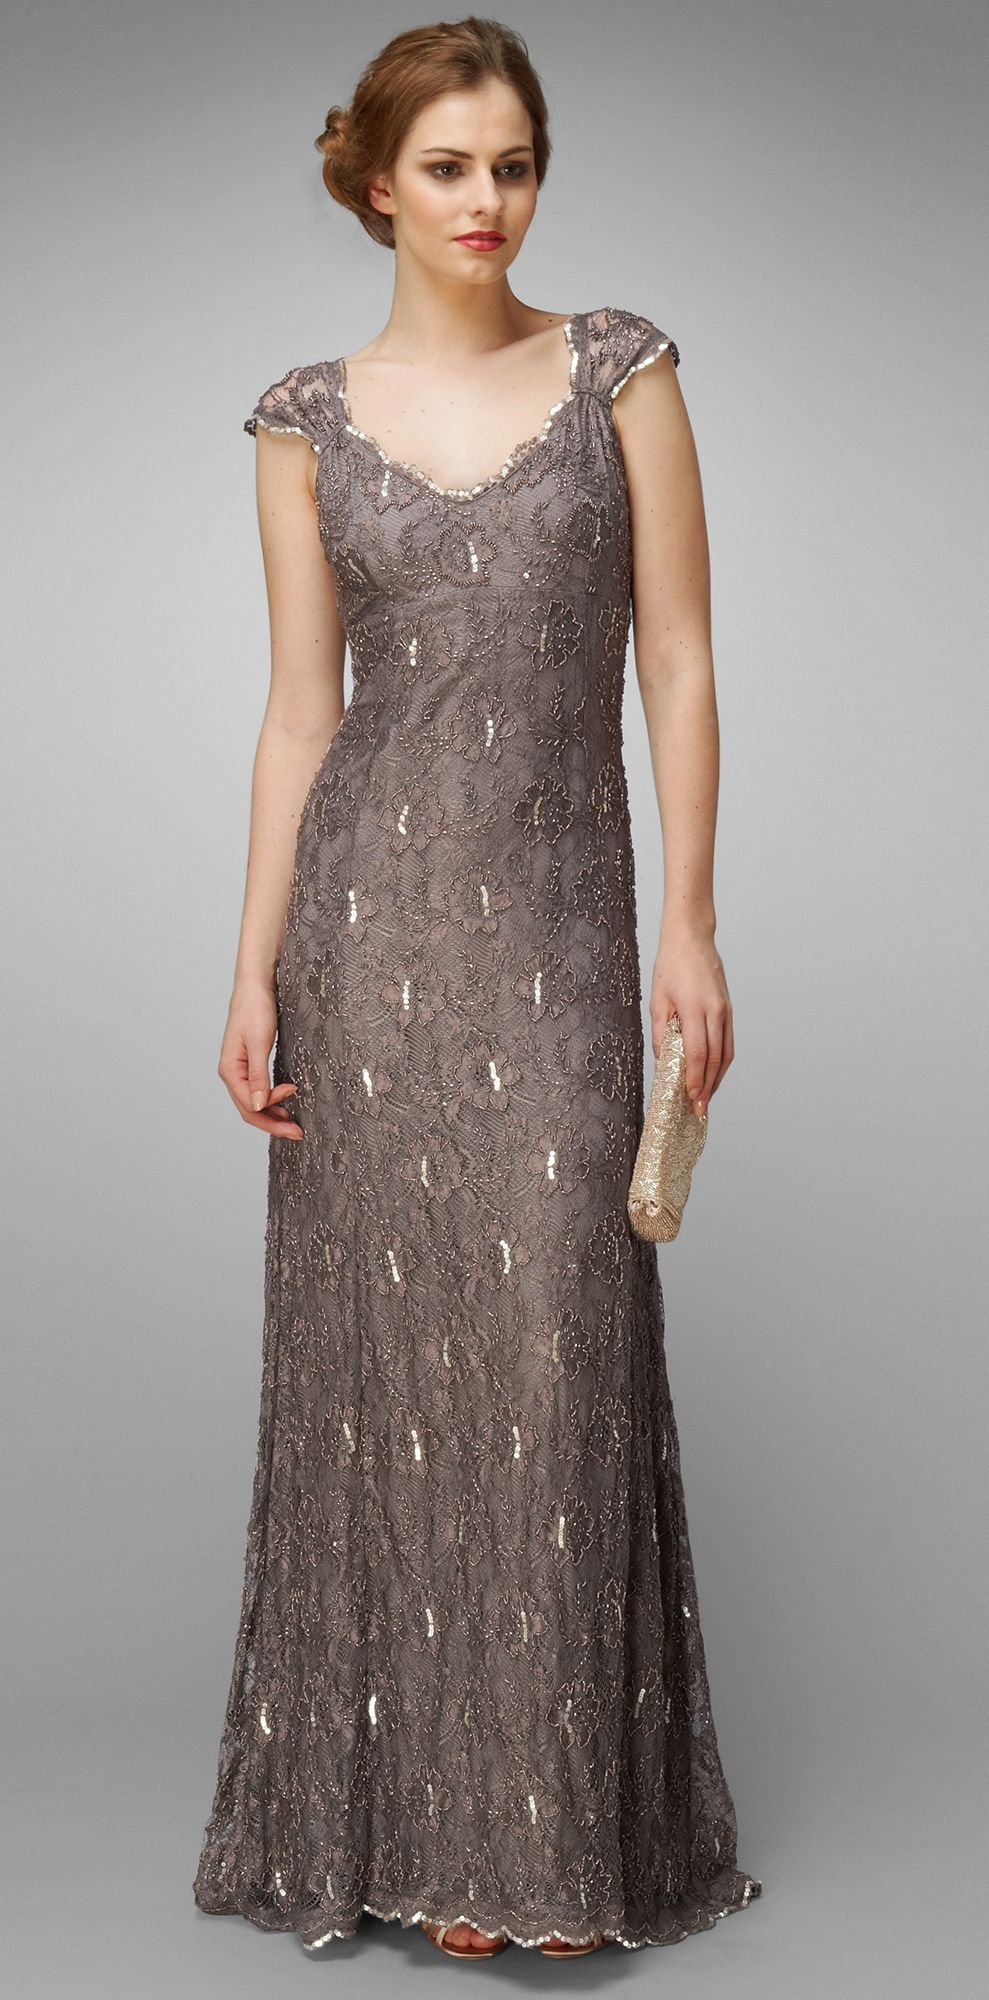 Collection 8 Eve Lace Beaded Full Length Dress by Phase Eight ...